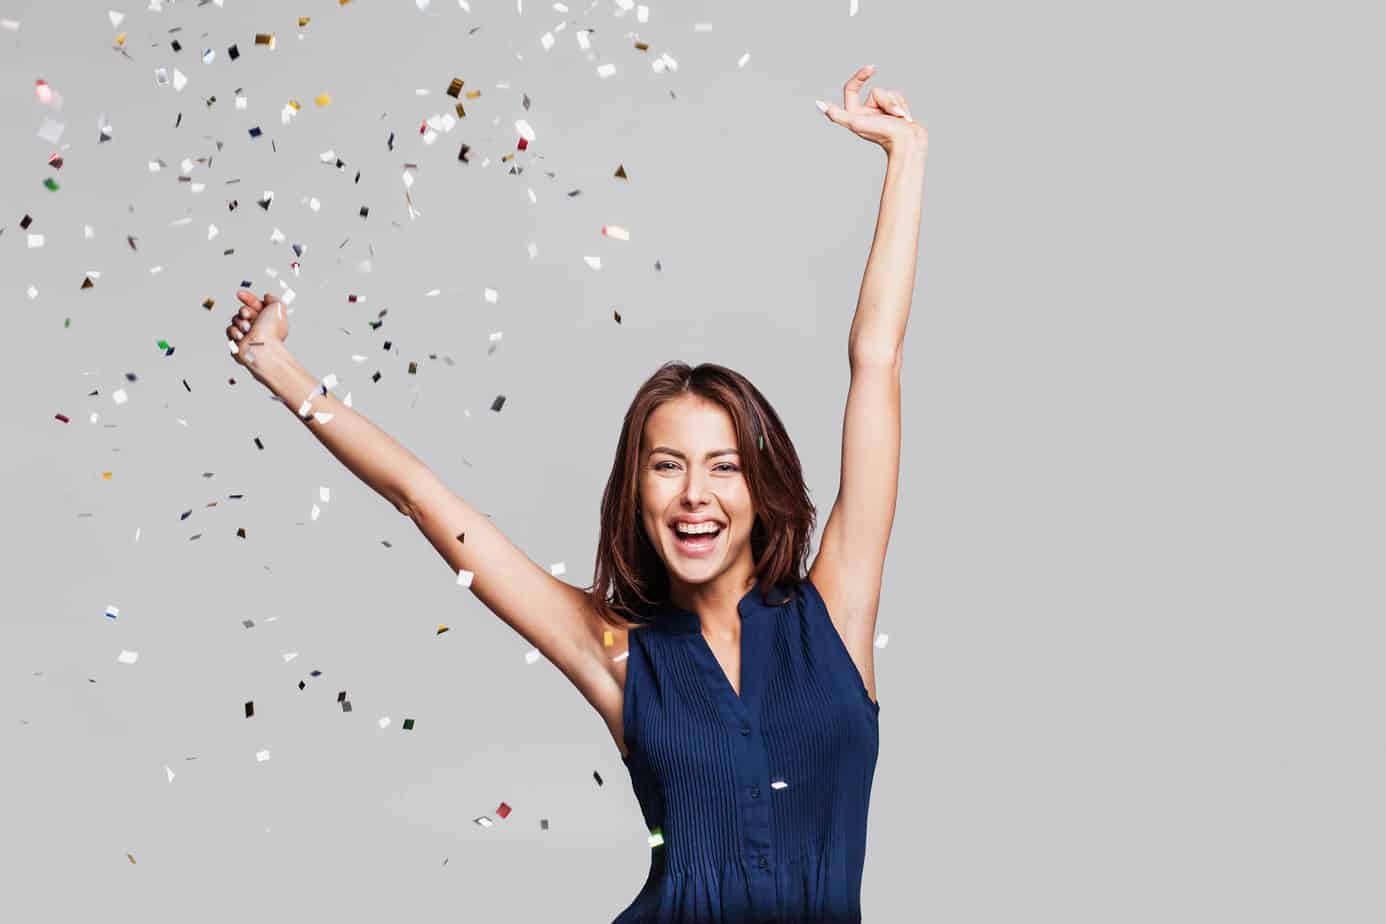 Planning a Surprise Party for Your Guests and Guest of Honor